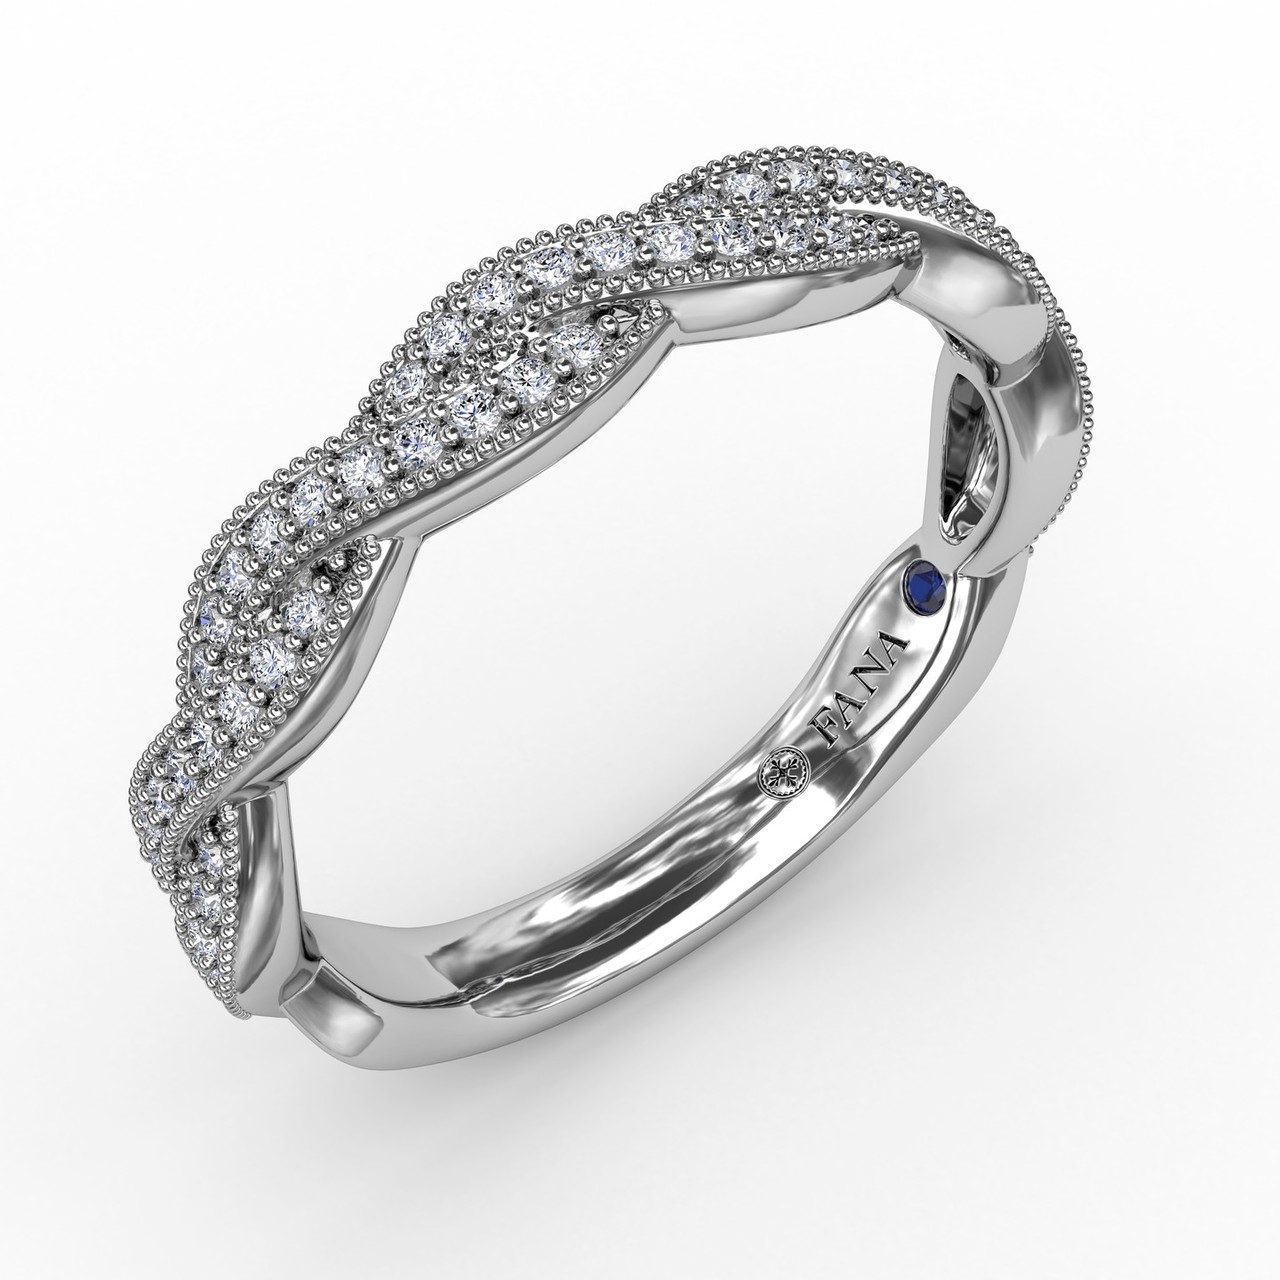 Vintage Twisted Diamond Band - Perfect for stacking, our vintage inspired twisted and expertly set diamond band will capture your heart with it's endless possibilites. This band is available in Platinum, 18KT & 14KT gold and can be customized through an Authorized Fana Retailer.